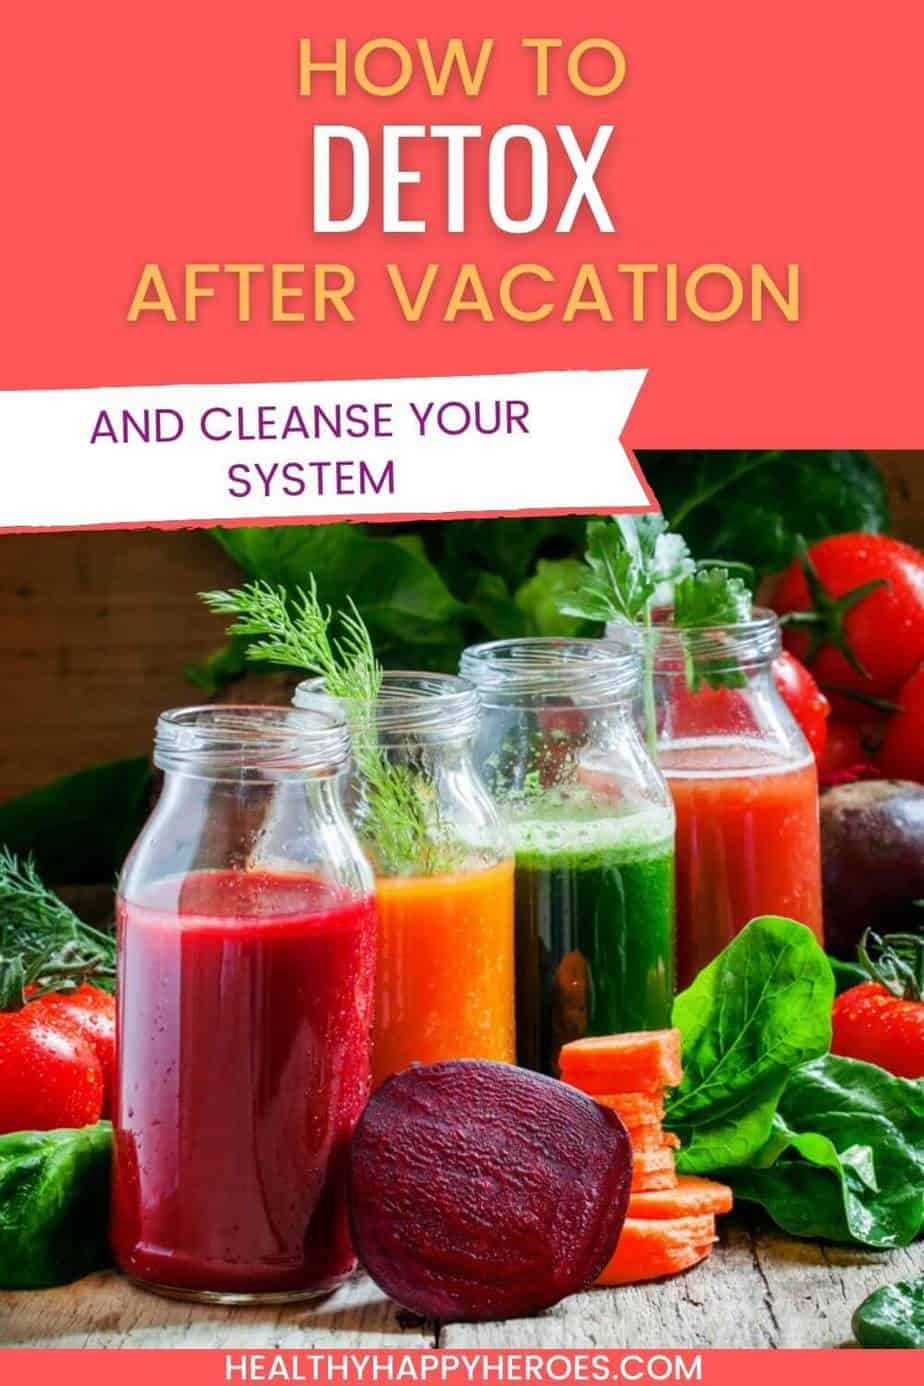 pinterest pin for how to detox after a vacation.  Showing several jars of detox juices and assorted fresh vegetables